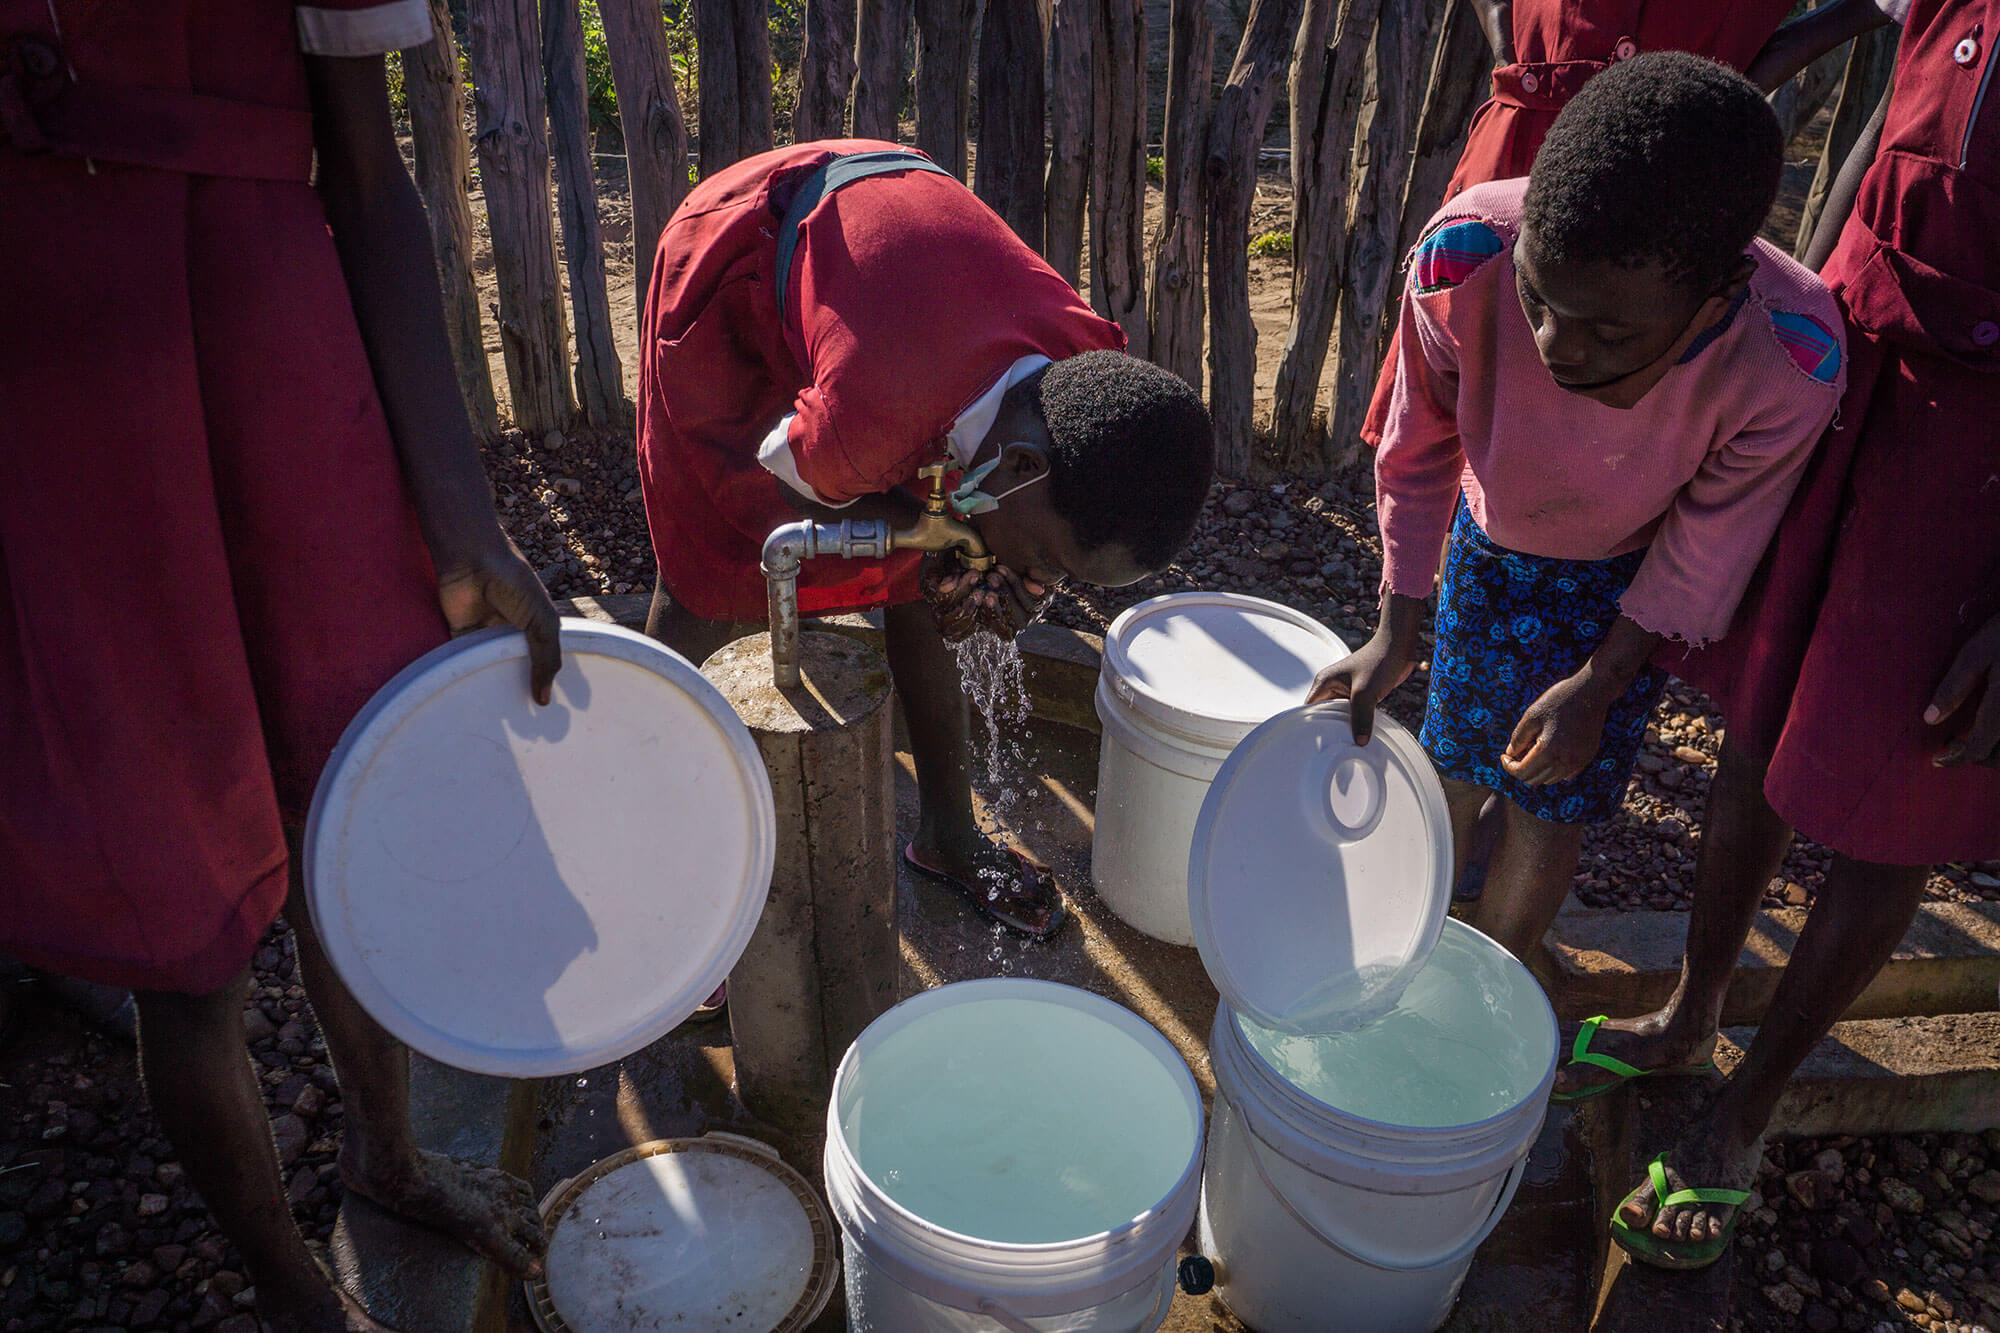 Our water, sanitation and hygiene team has been building new solar-powered water pumps across Zimbabwe, in communities like Mpumelelo and Zumanana.